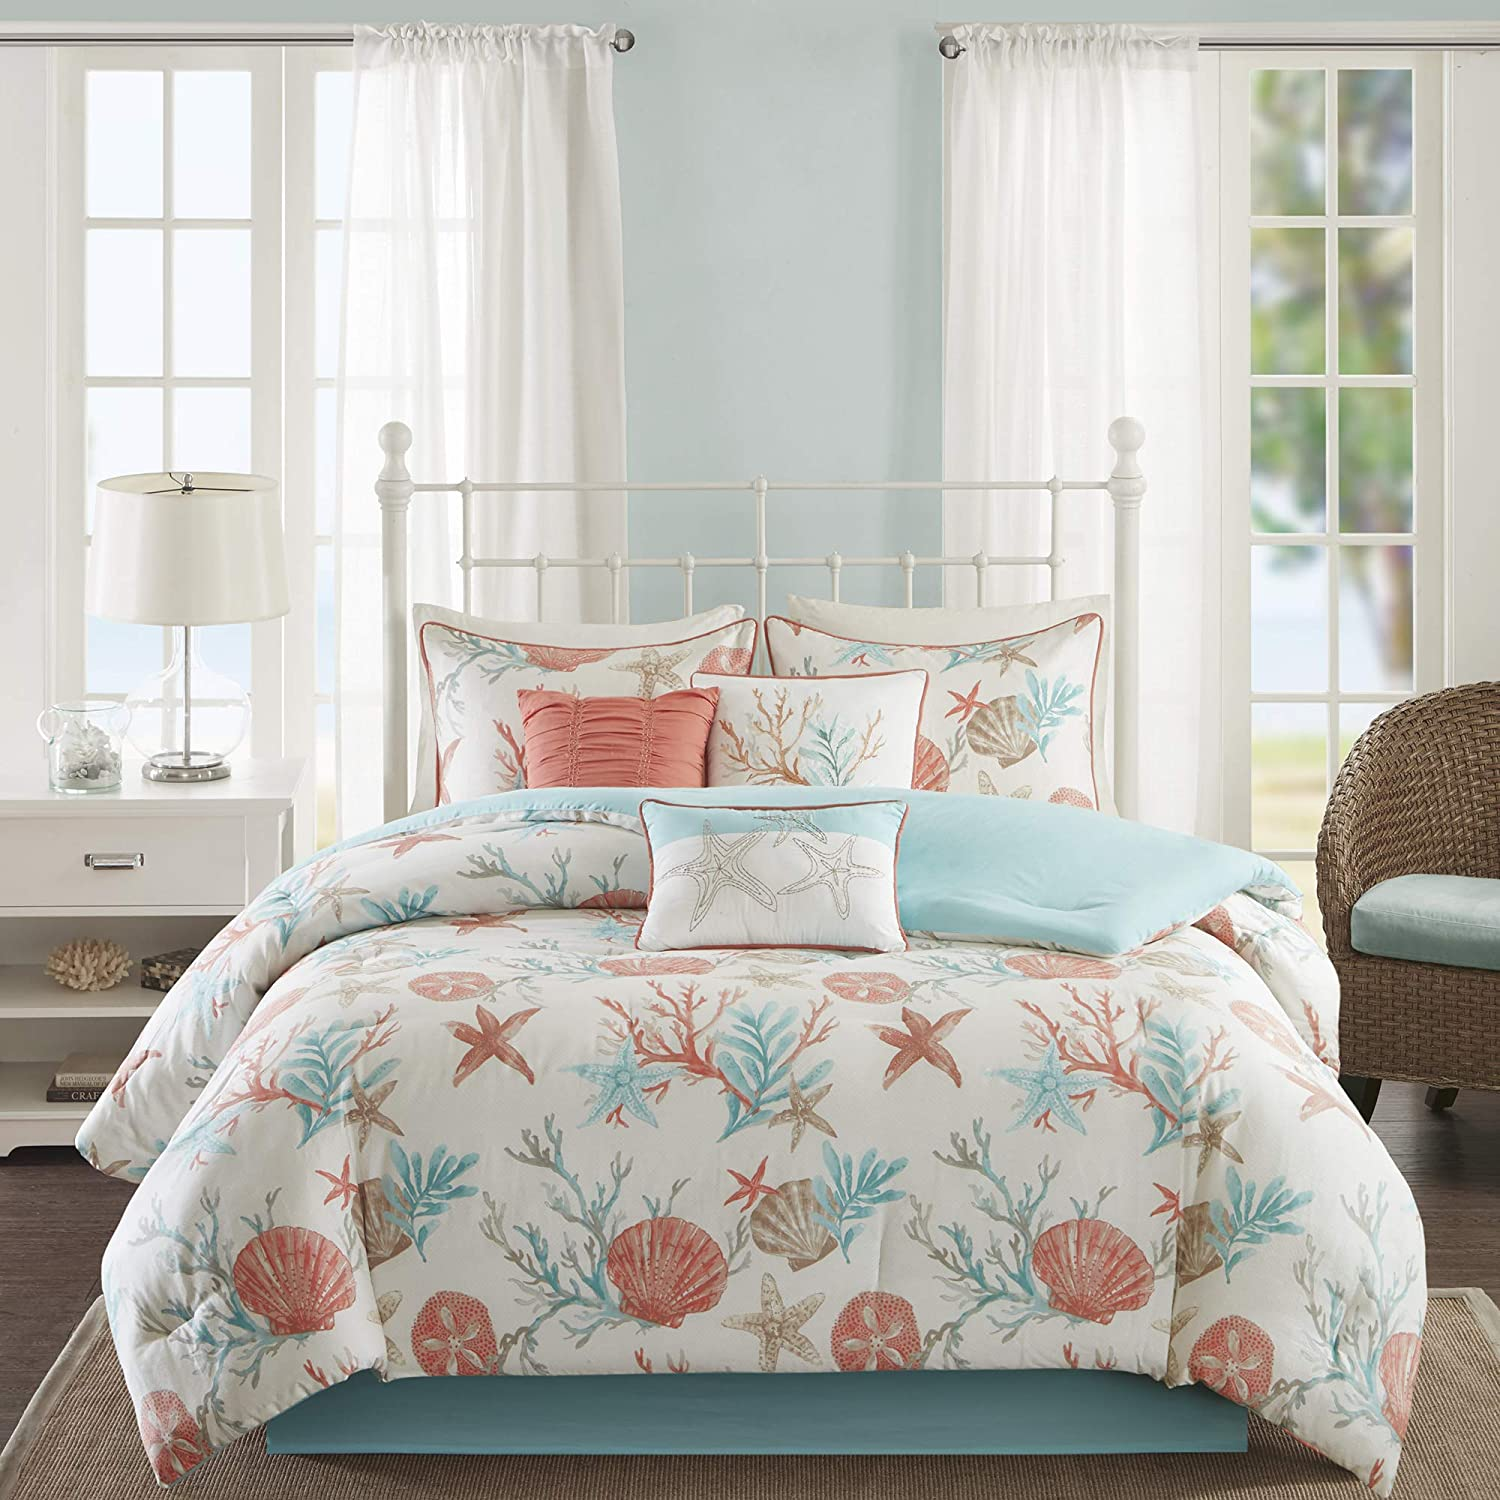 "Madison Park Cotton Comforter Set-Coastal Coral, Starfish Design All Season Down Alternative Cozy Bedding with Matching Shams, Decorative Pillow, Queen(90""x90""), Pebble Beach Teal, 7 Piece"